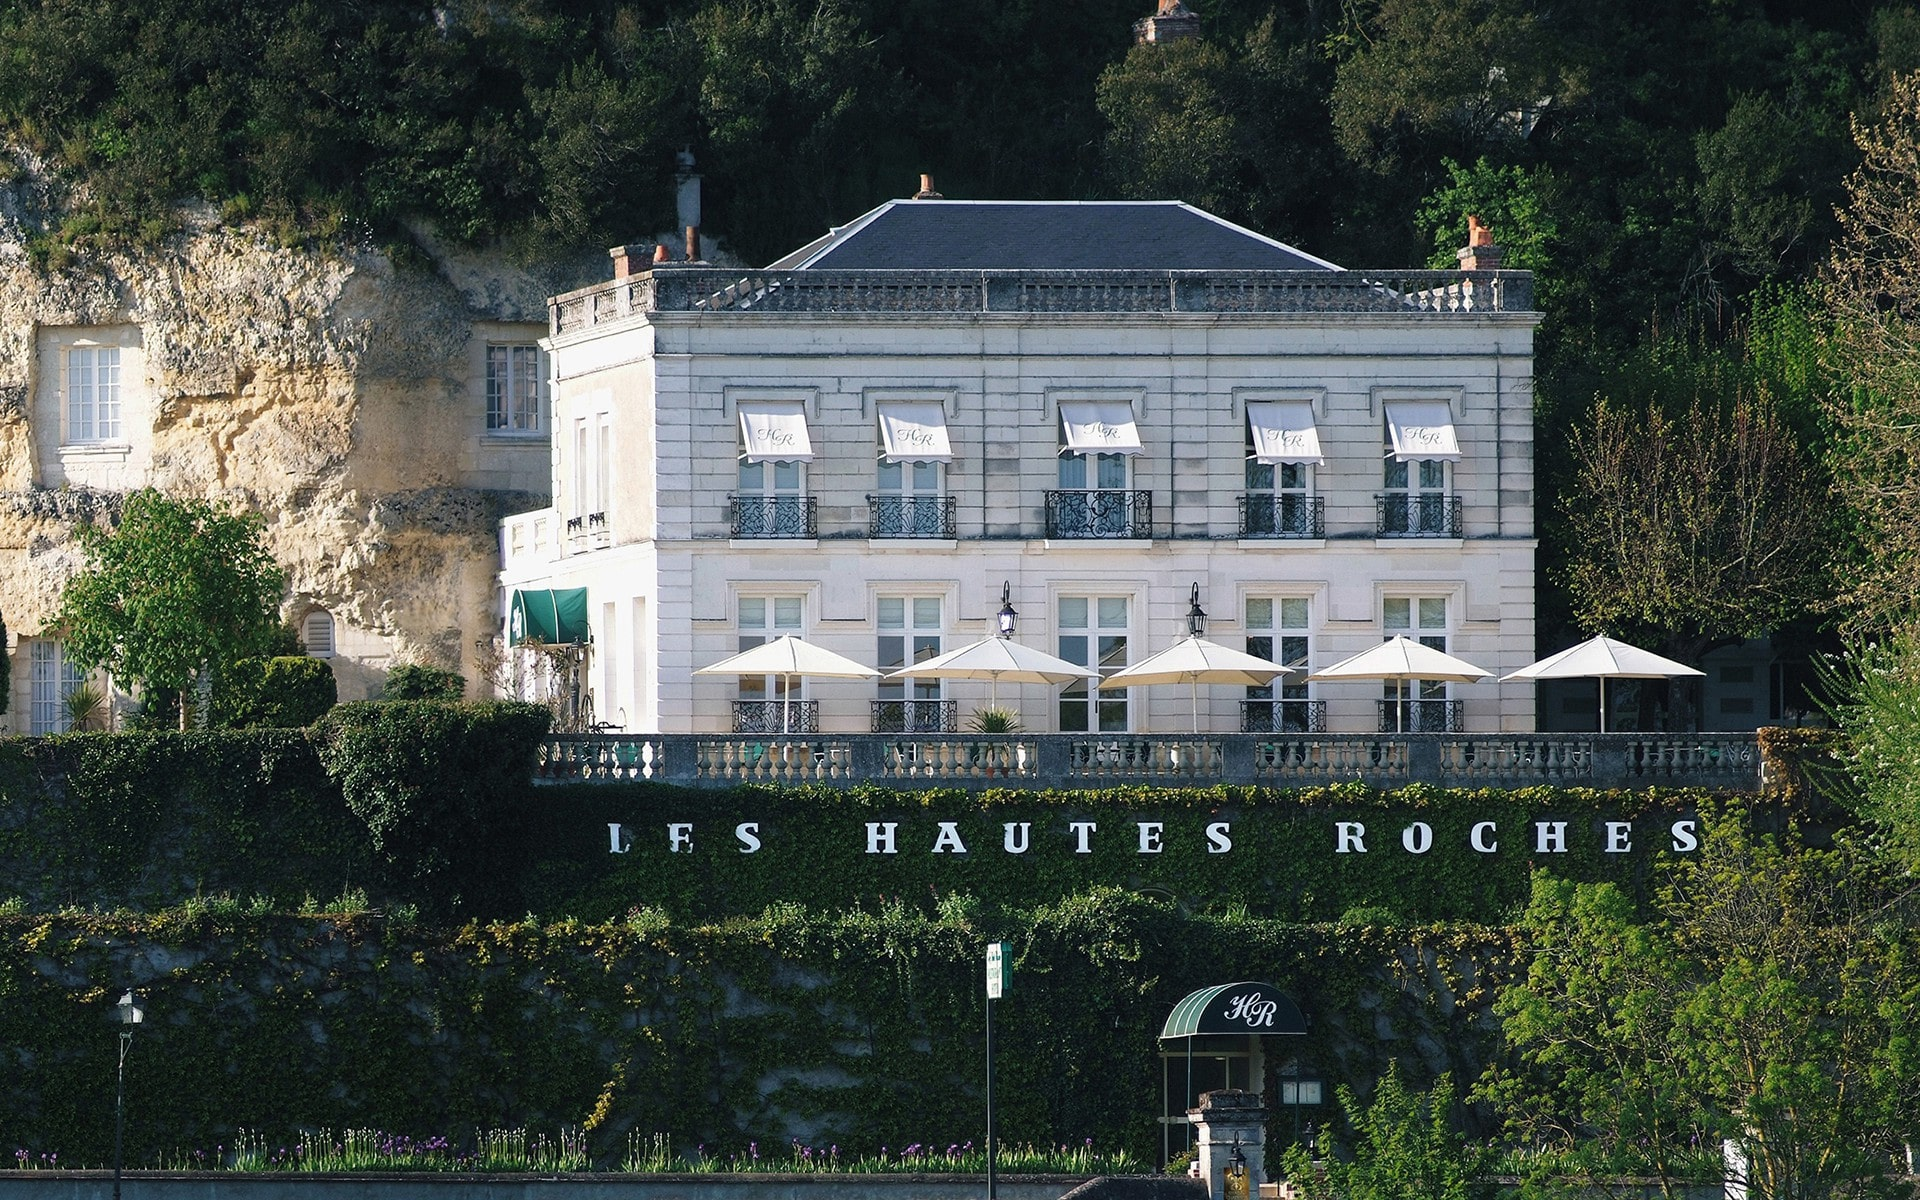 This is an image of the Hautes Roches Hotel